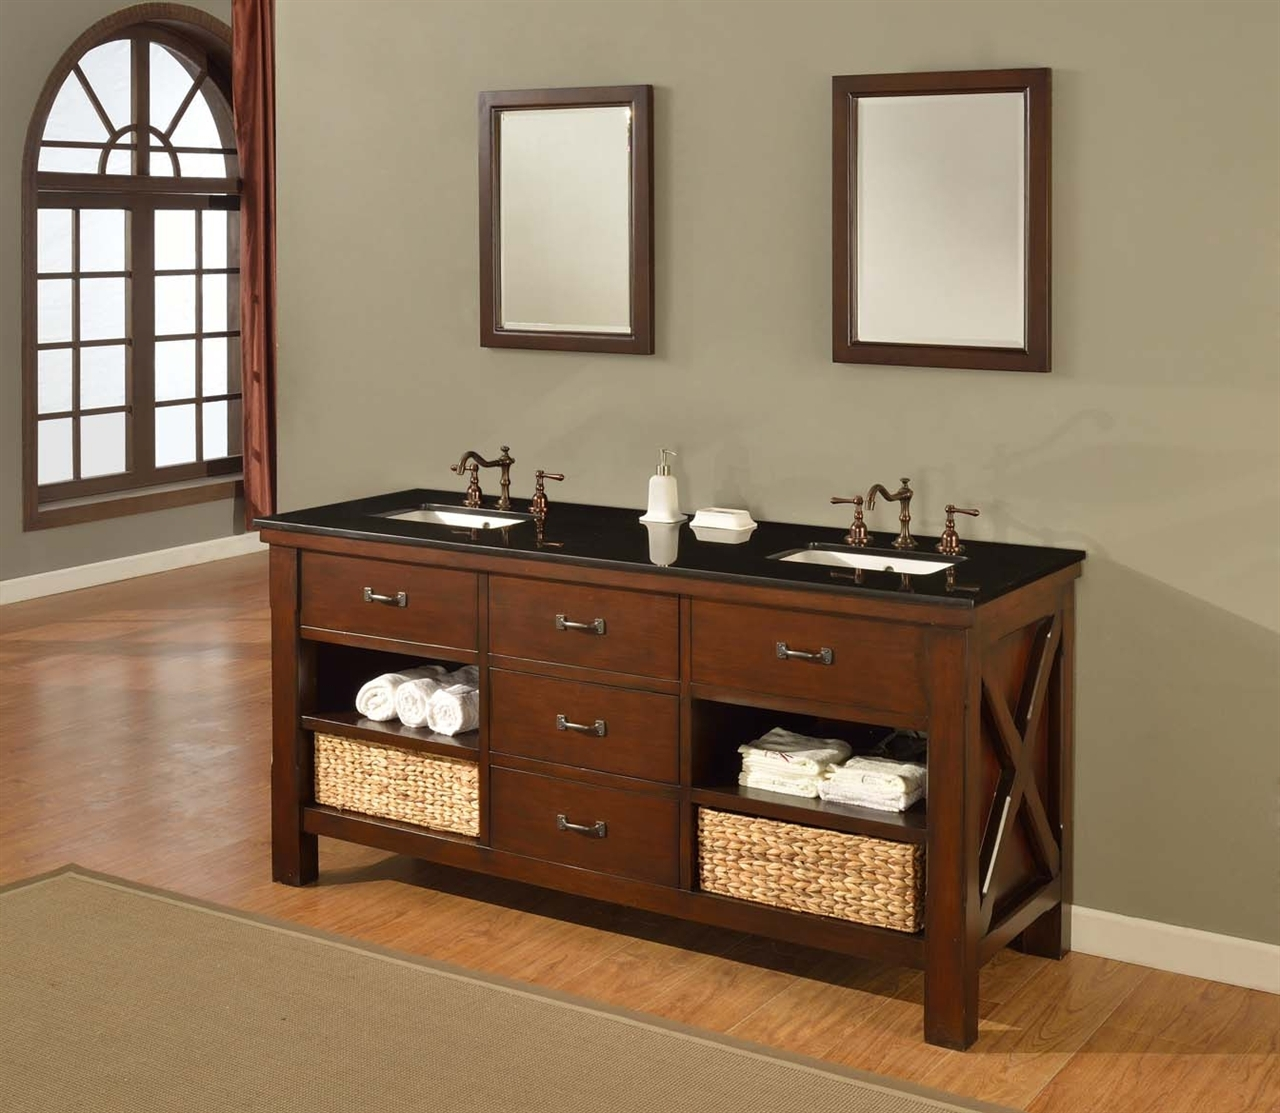 Permalink to Mission Style Bathroom Furniture